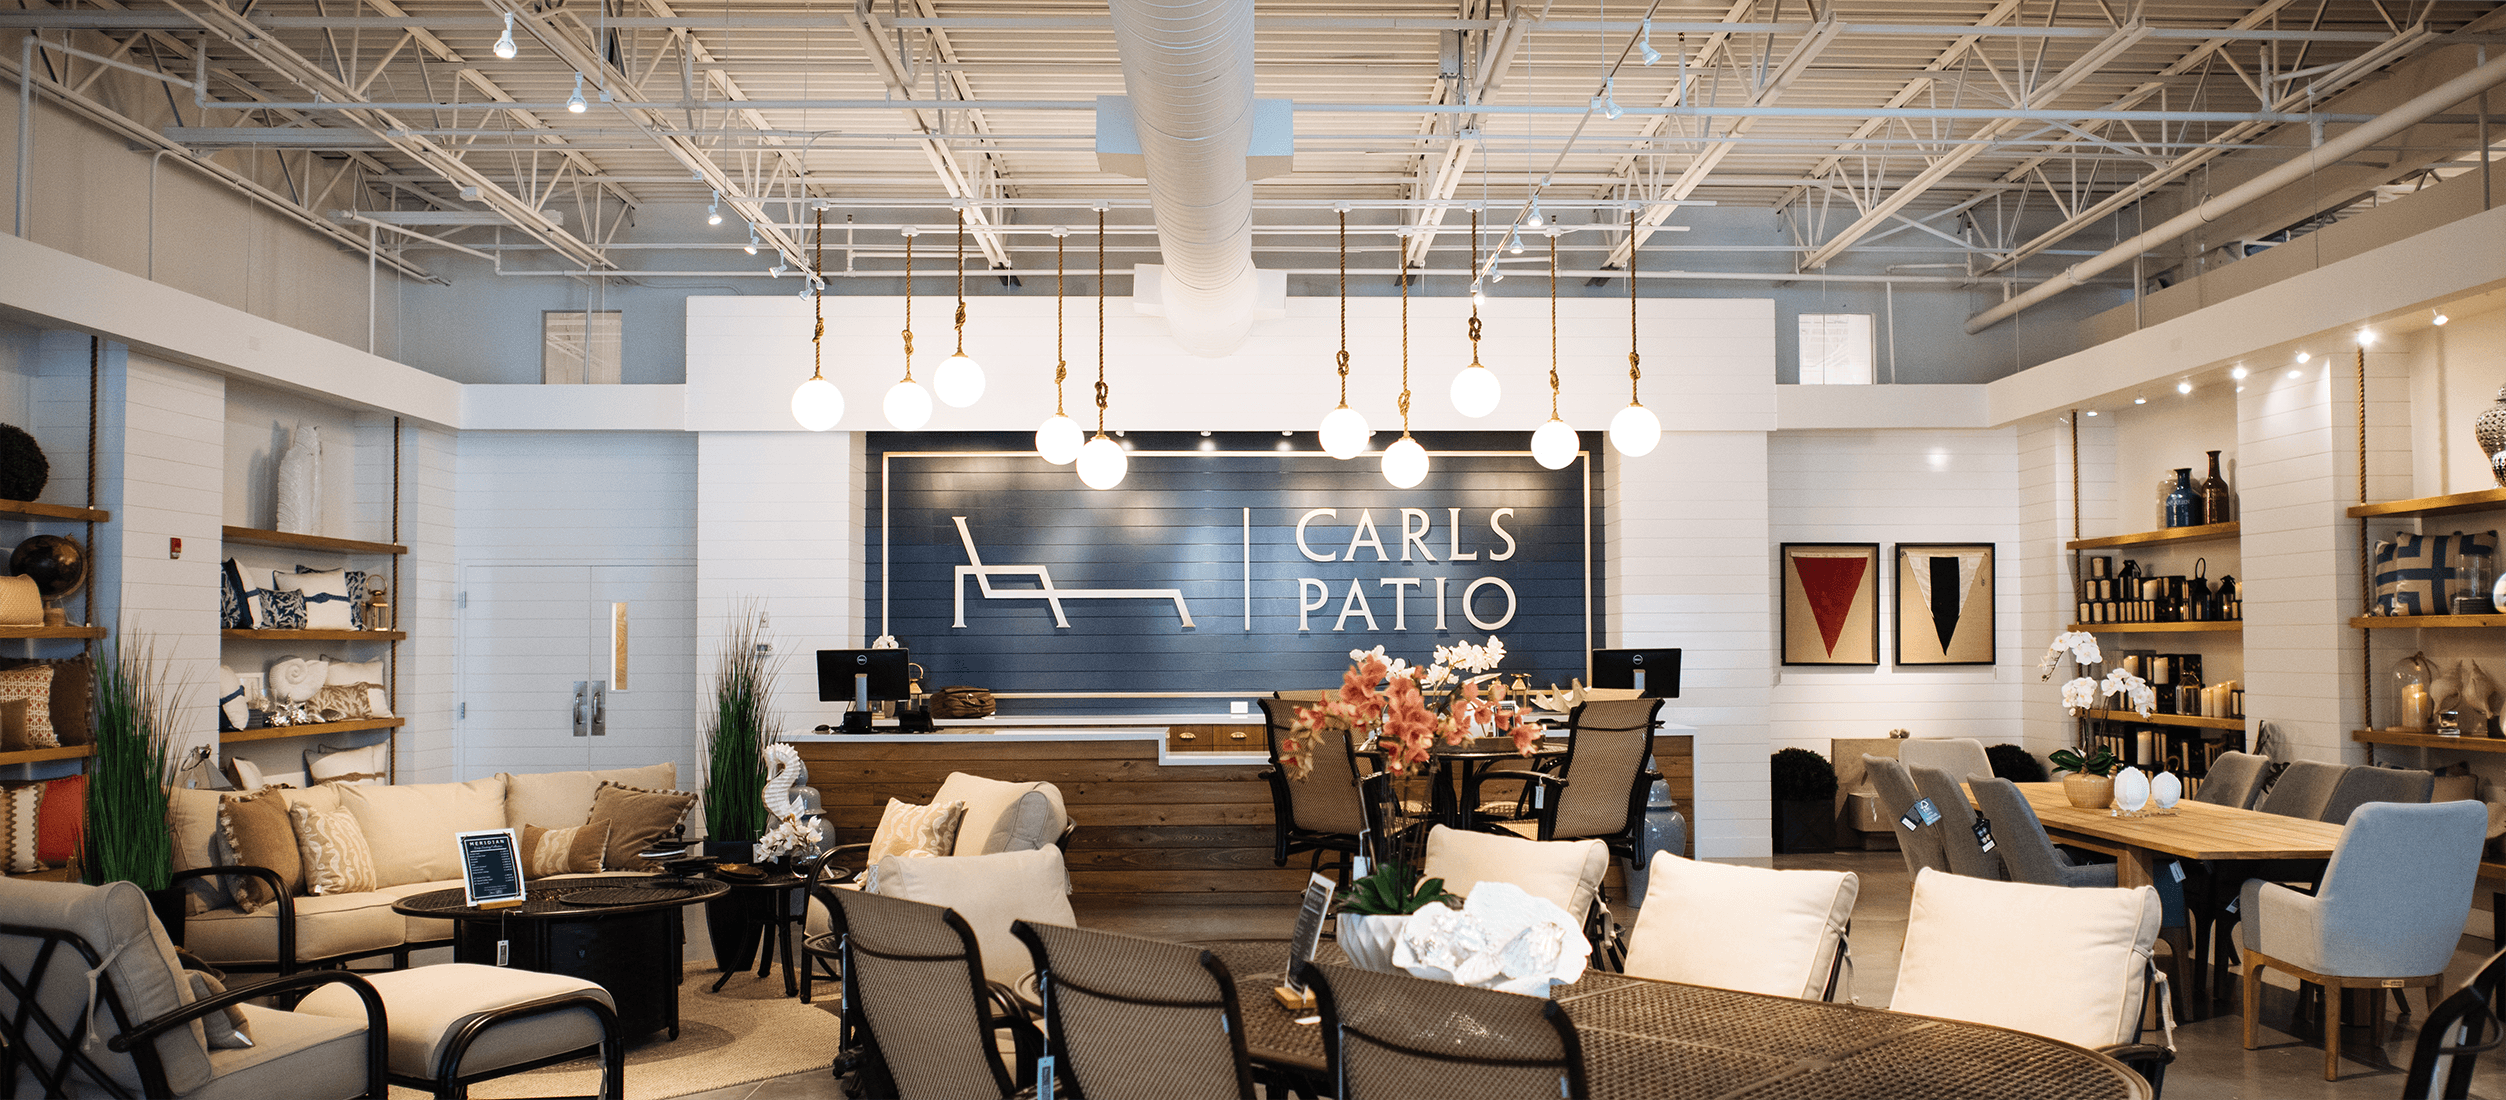 Delightful Carls Patio Needed A Model Store Designed To Compliment Their Style And  Provide A Remarkable Display Setting For Their Innovative Outdoor Furniture  And ...